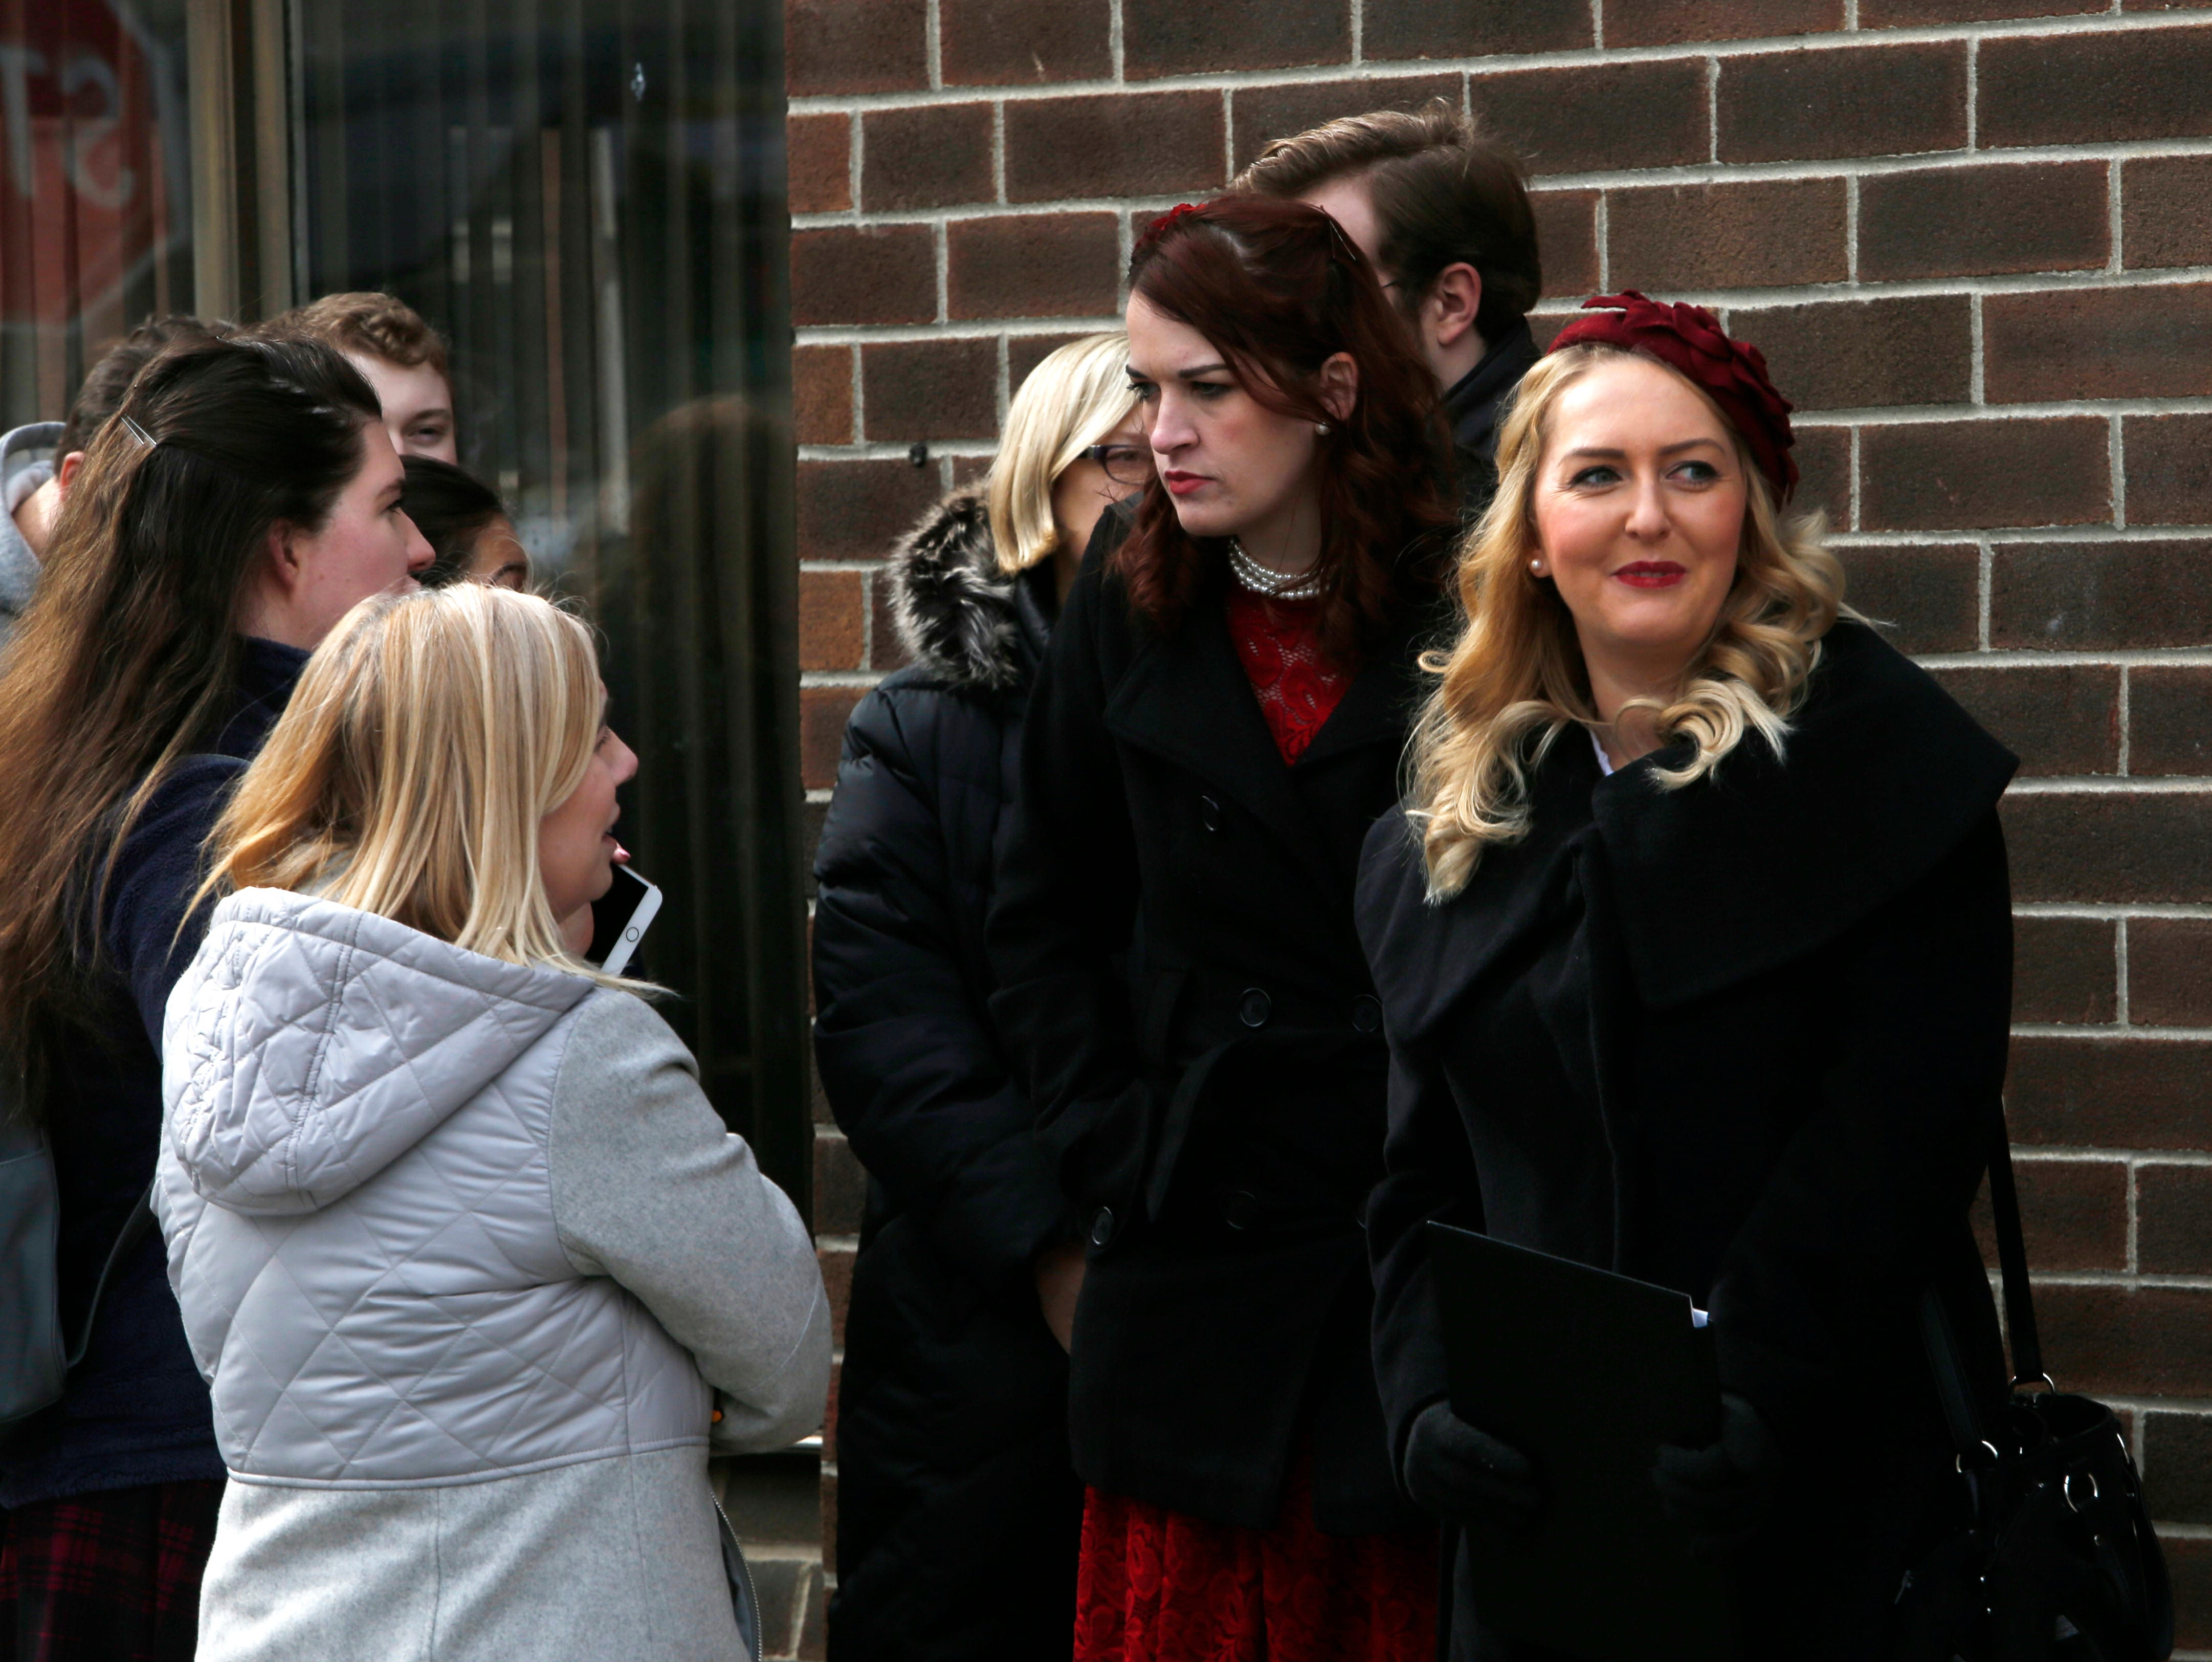 """At right, Mirela Ajdimouski of Buffalo waits to enter the Majed J. Nesheiwat Convention Center for Saturday's open casting call for an HBO series staring Mark Ruffalo, called """"I Know This Much is True"""" in the City of Poughkeepsie on Feb 23, 2019."""